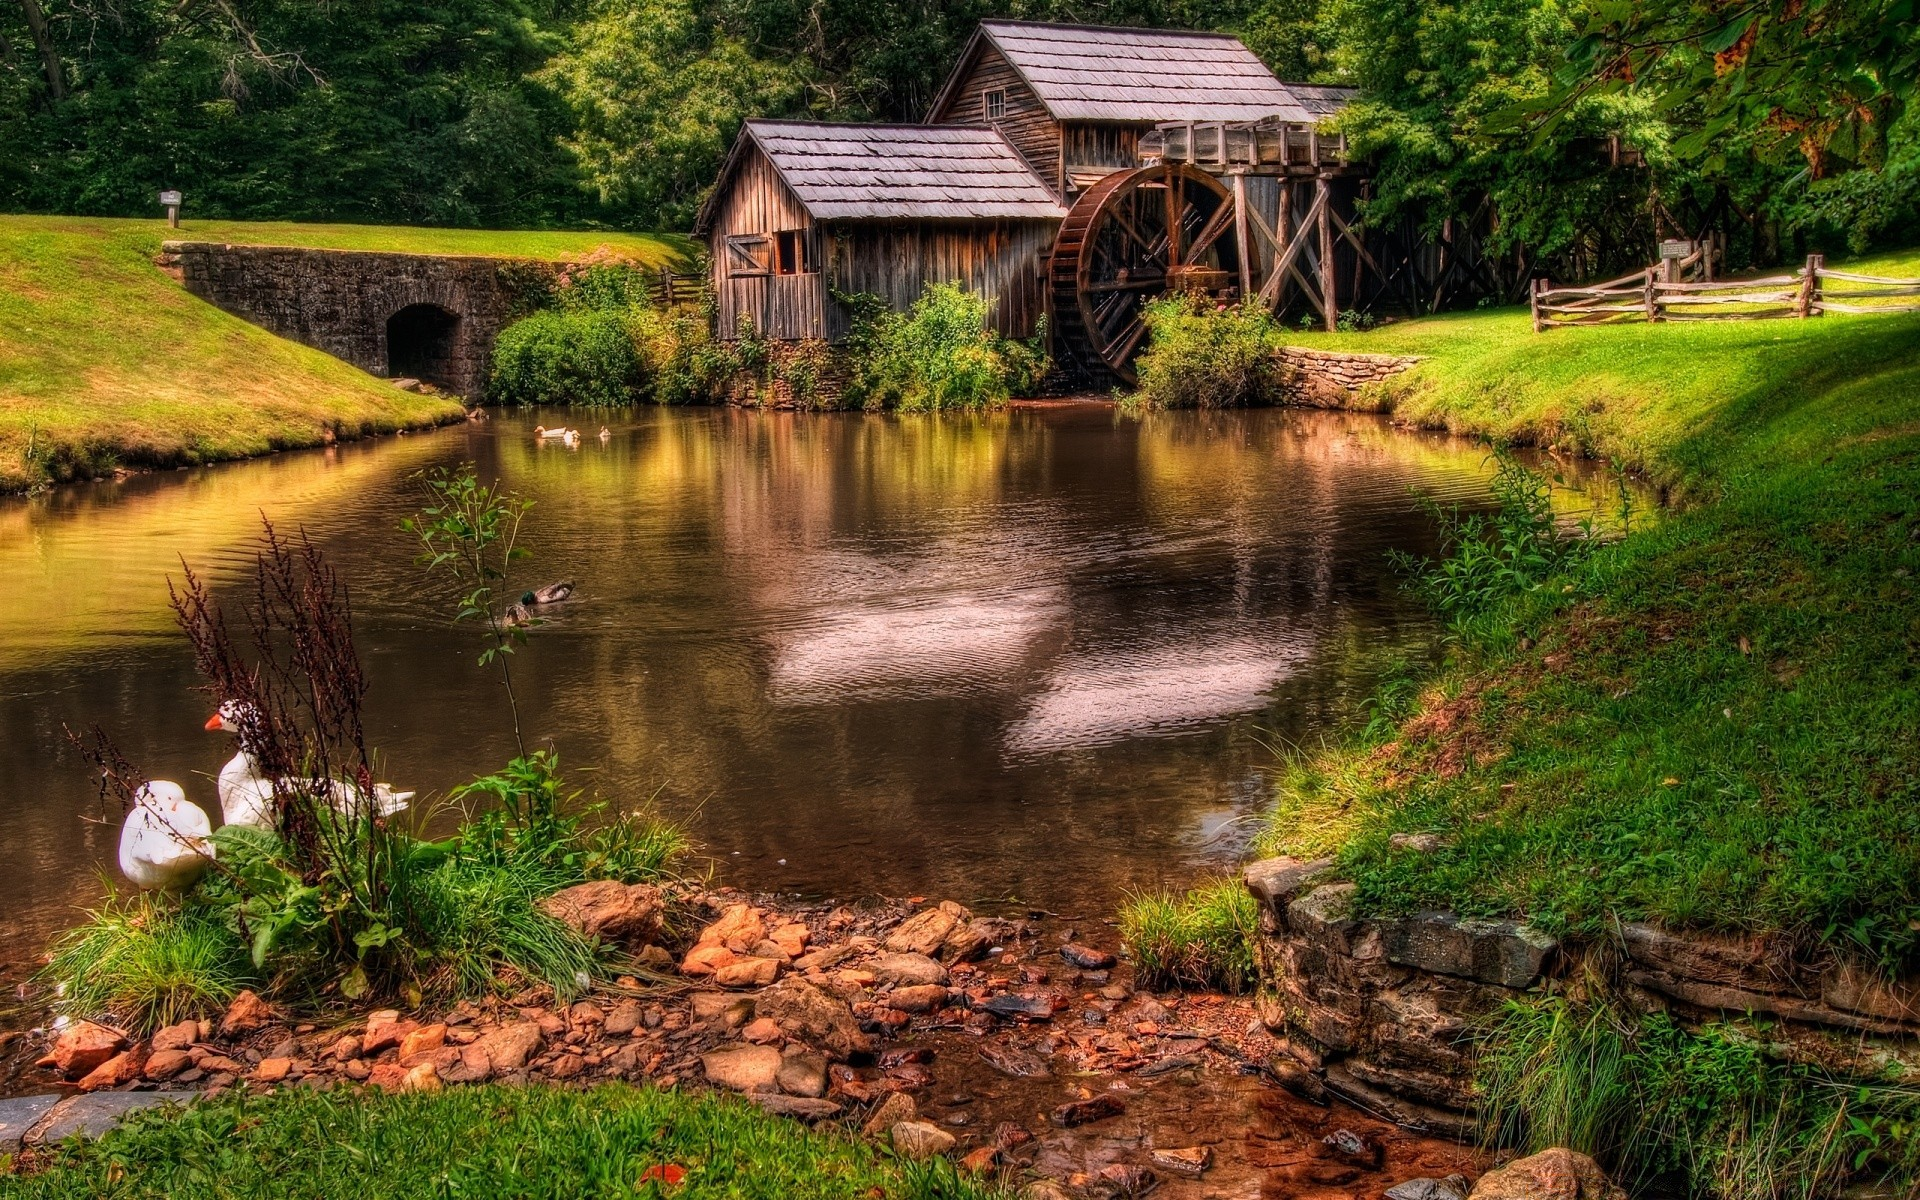 landscapes water wood nature river outdoors landscape grass bridge tree rural travel fall lake leaf countryside pool summer rustic scenic